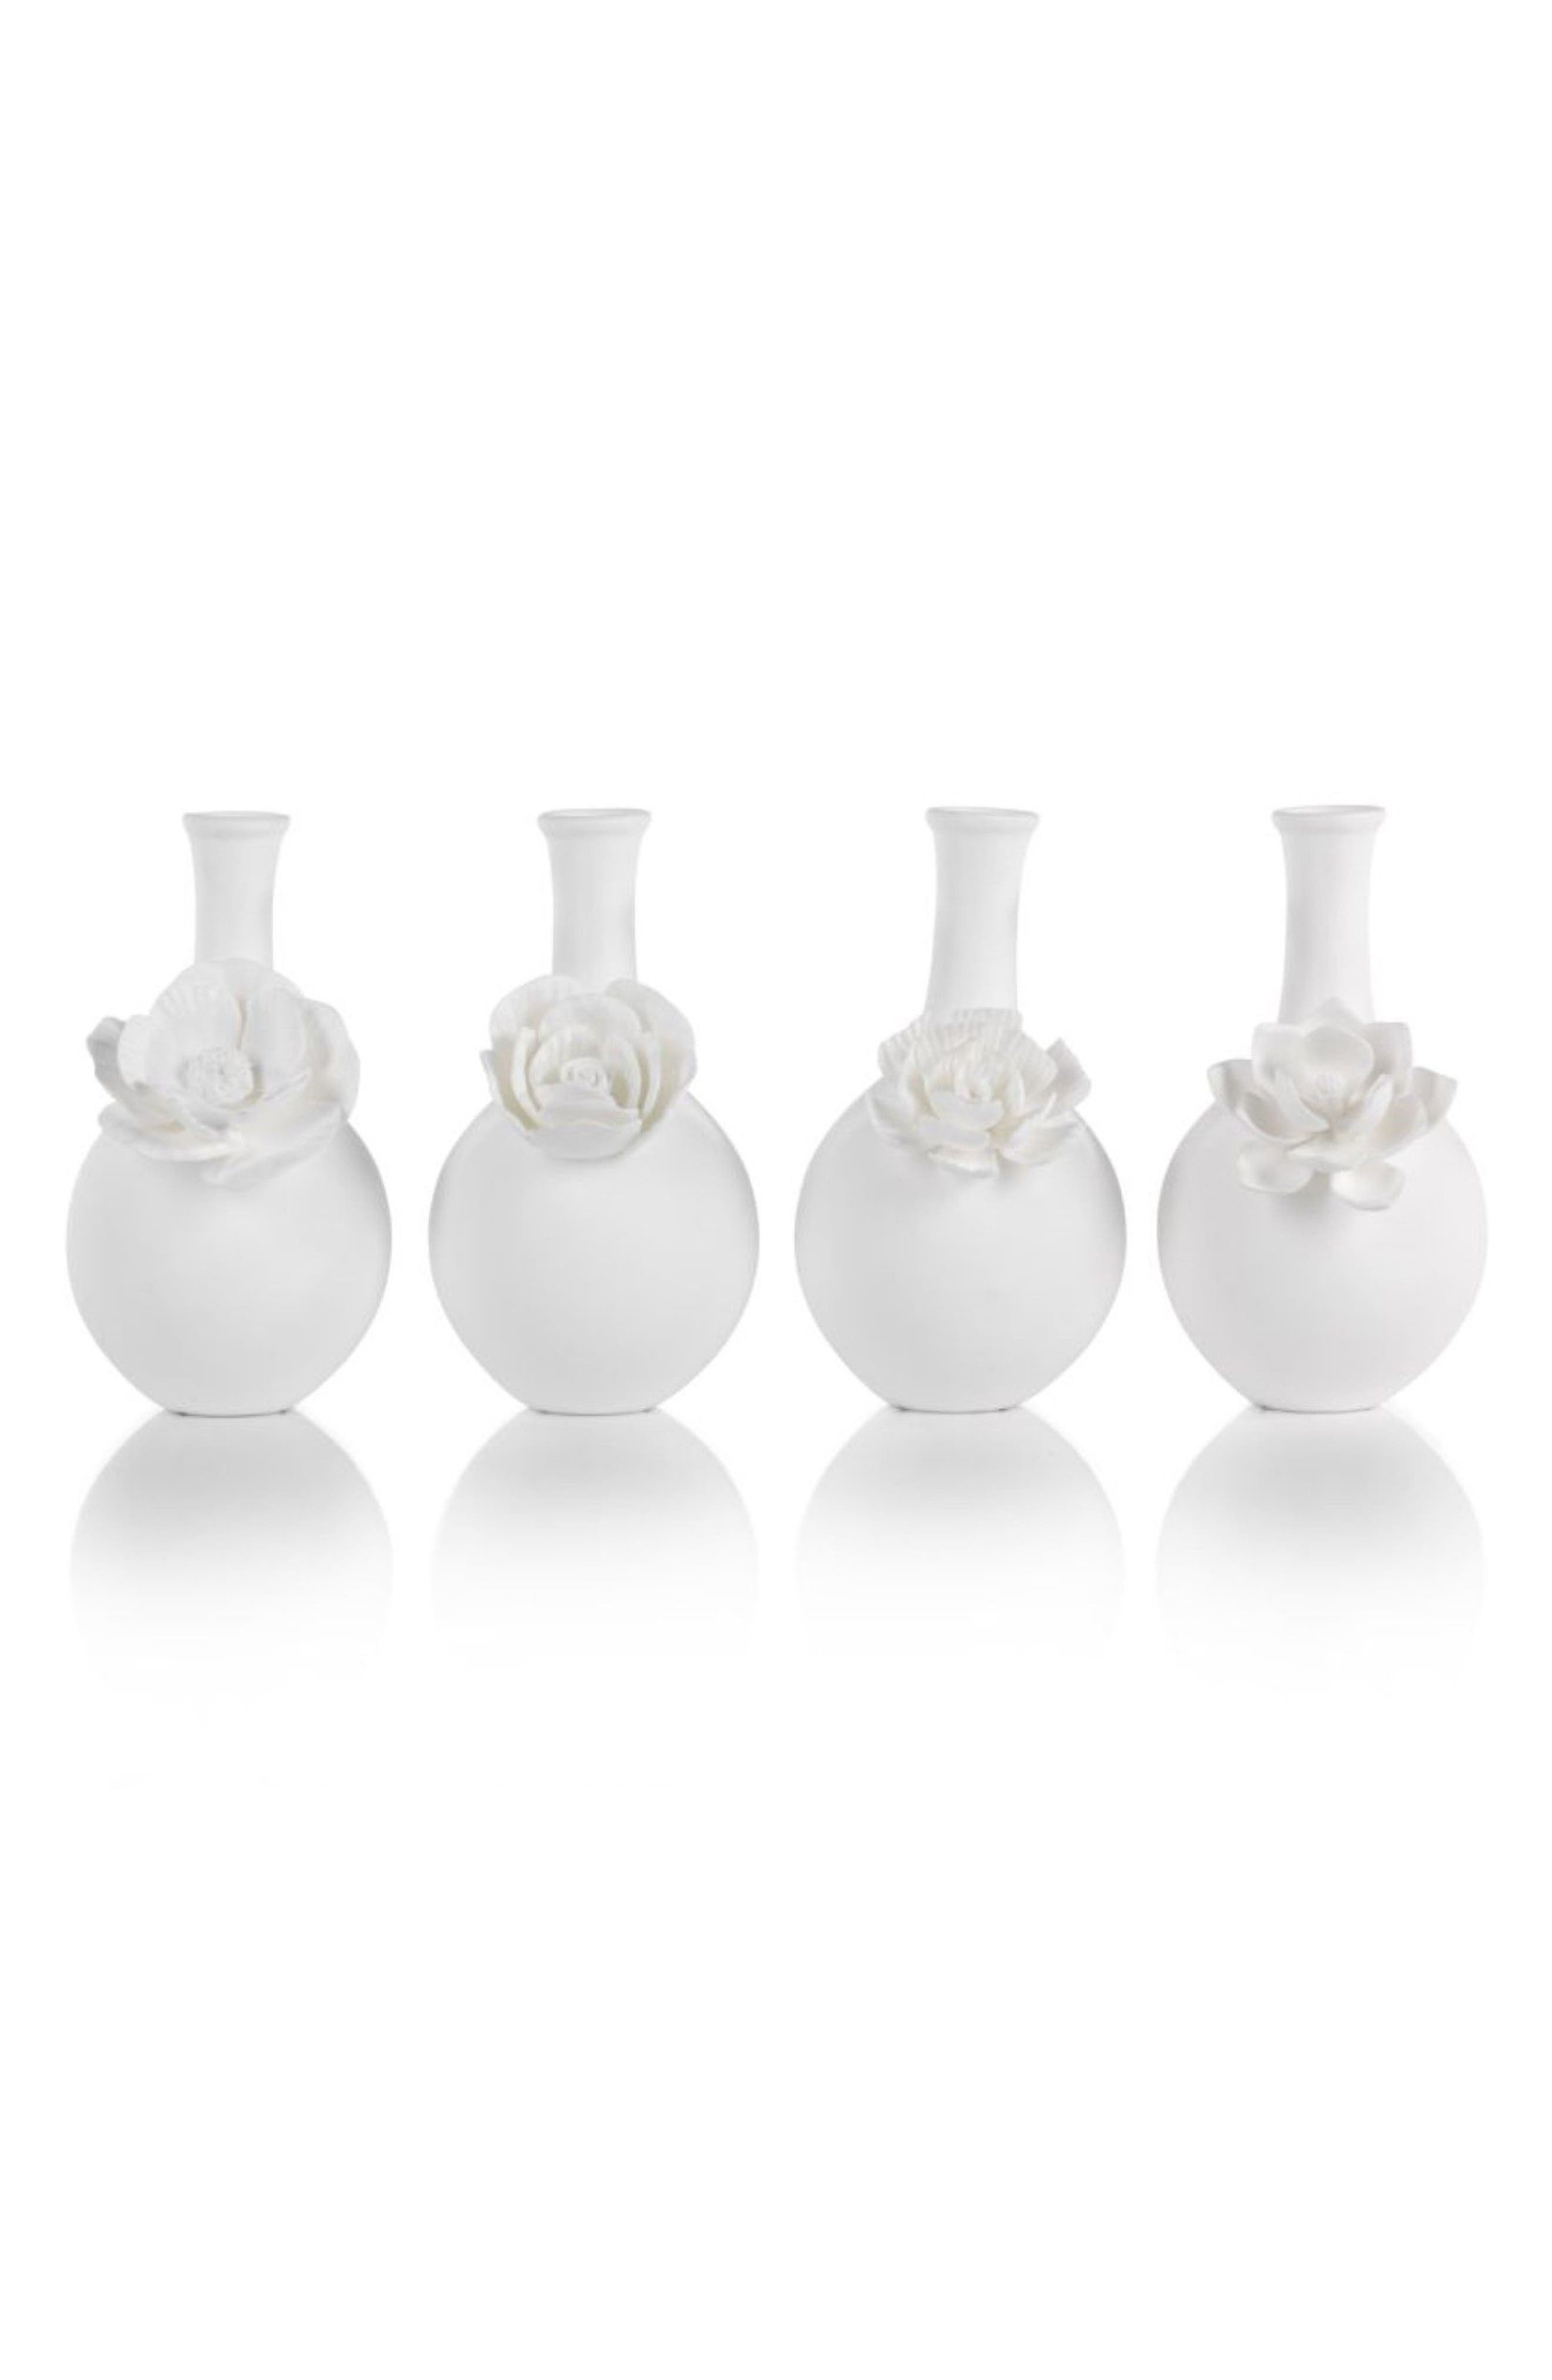 Cameo Set of 4 Porcelain Bud Vases,                             Main thumbnail 1, color,